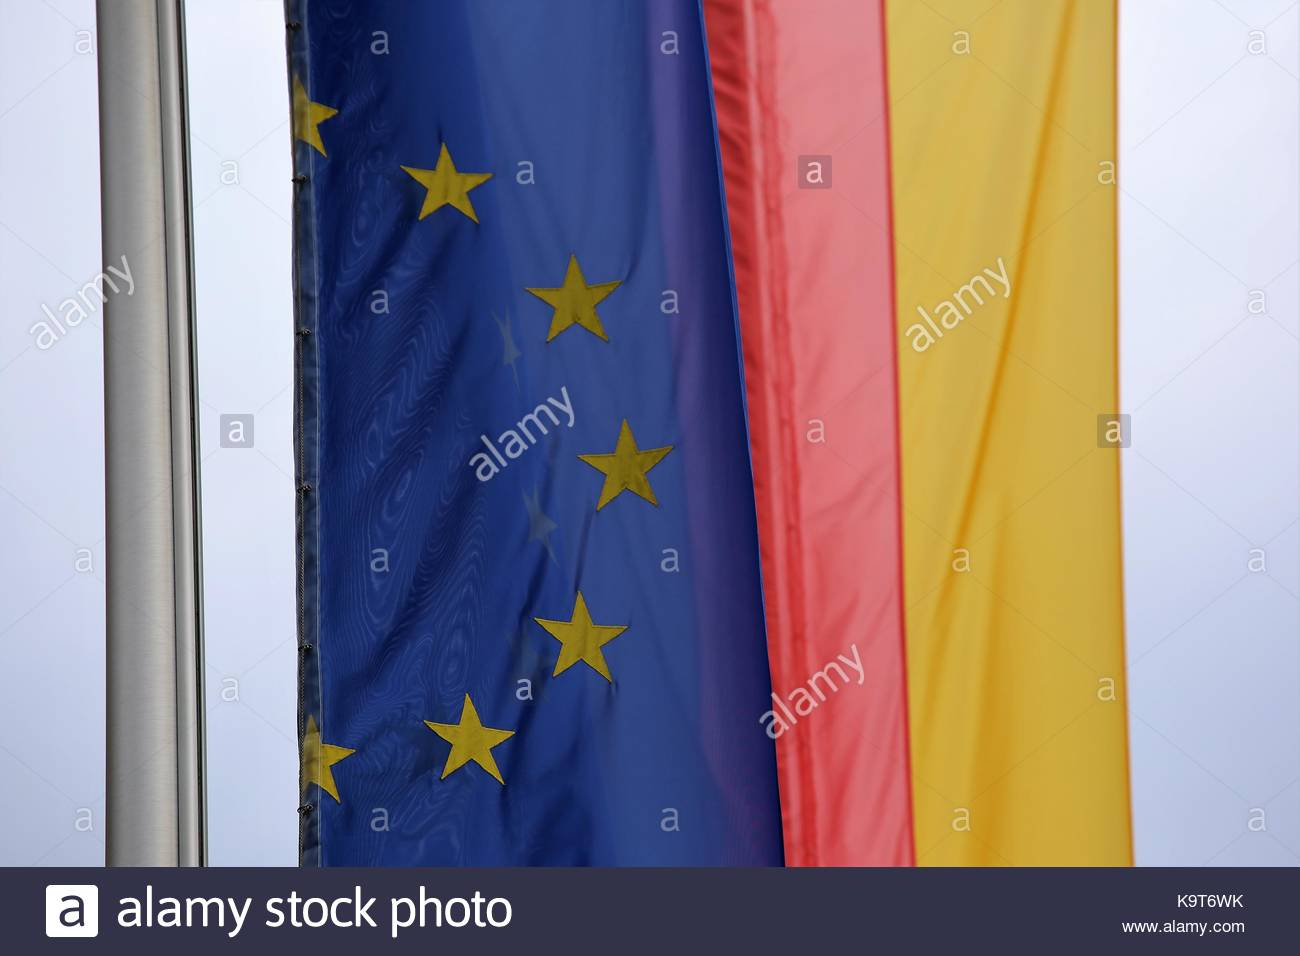 The EU and German flags side by side on a flagpole in the week of the German general election which returned Angela - Stock Image